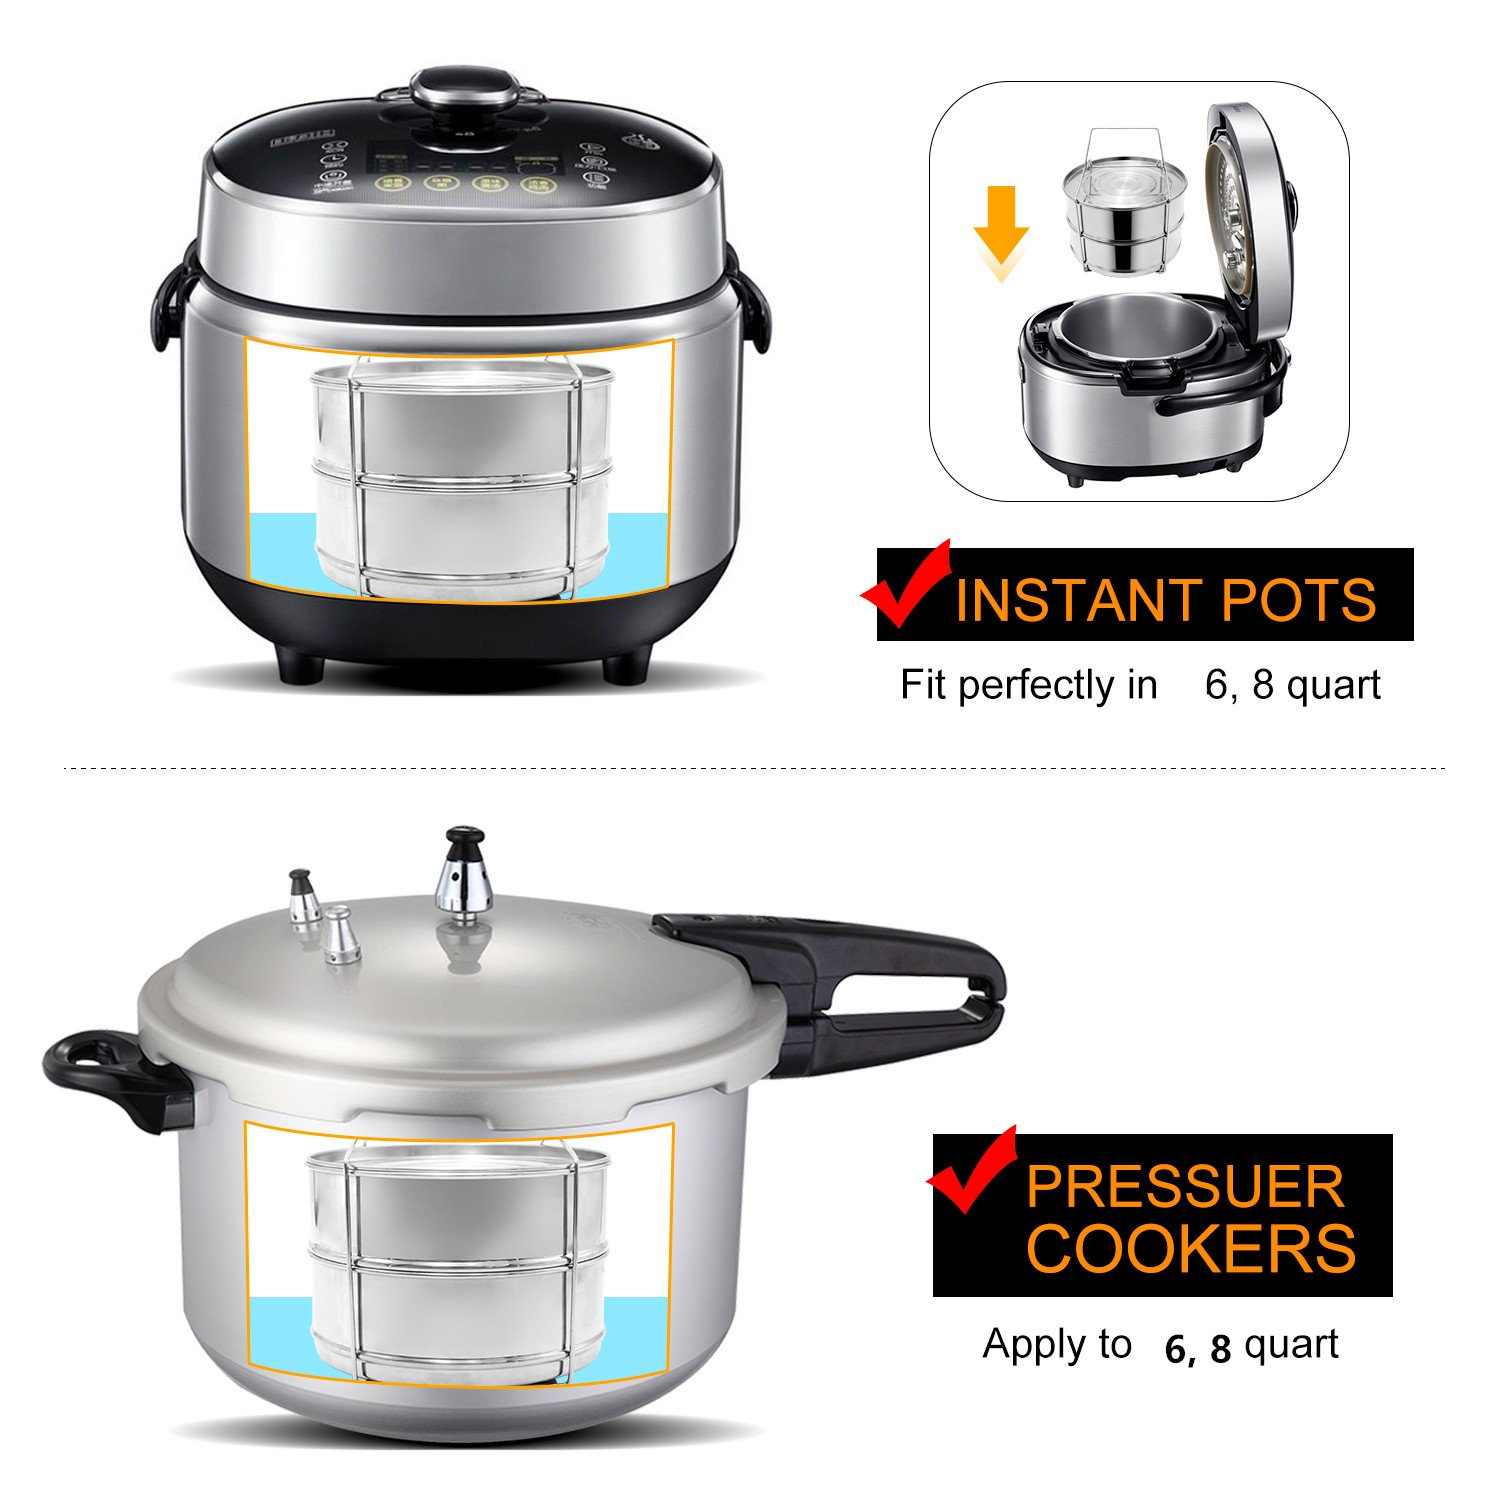 Stackable Steamer Insert Pans, Stainless Steel Insert Steamer for 6/8 Quart Instant Pot Pressure Cooker Baking Lasagna Pans Pot in Pot Accessories Cook 2 foods at Once by youermei (Image #5)